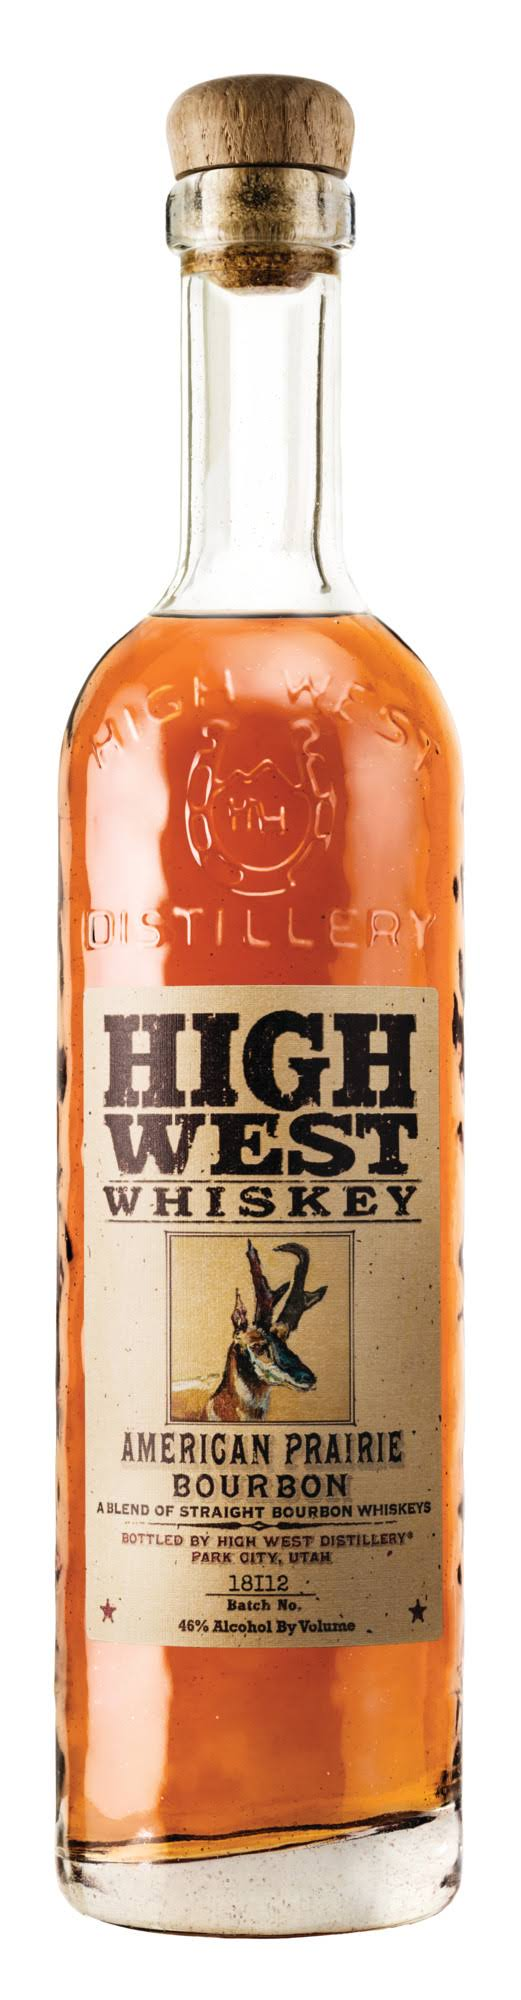 High West American Prairie Reserve Whiskey - 750 ml bottle